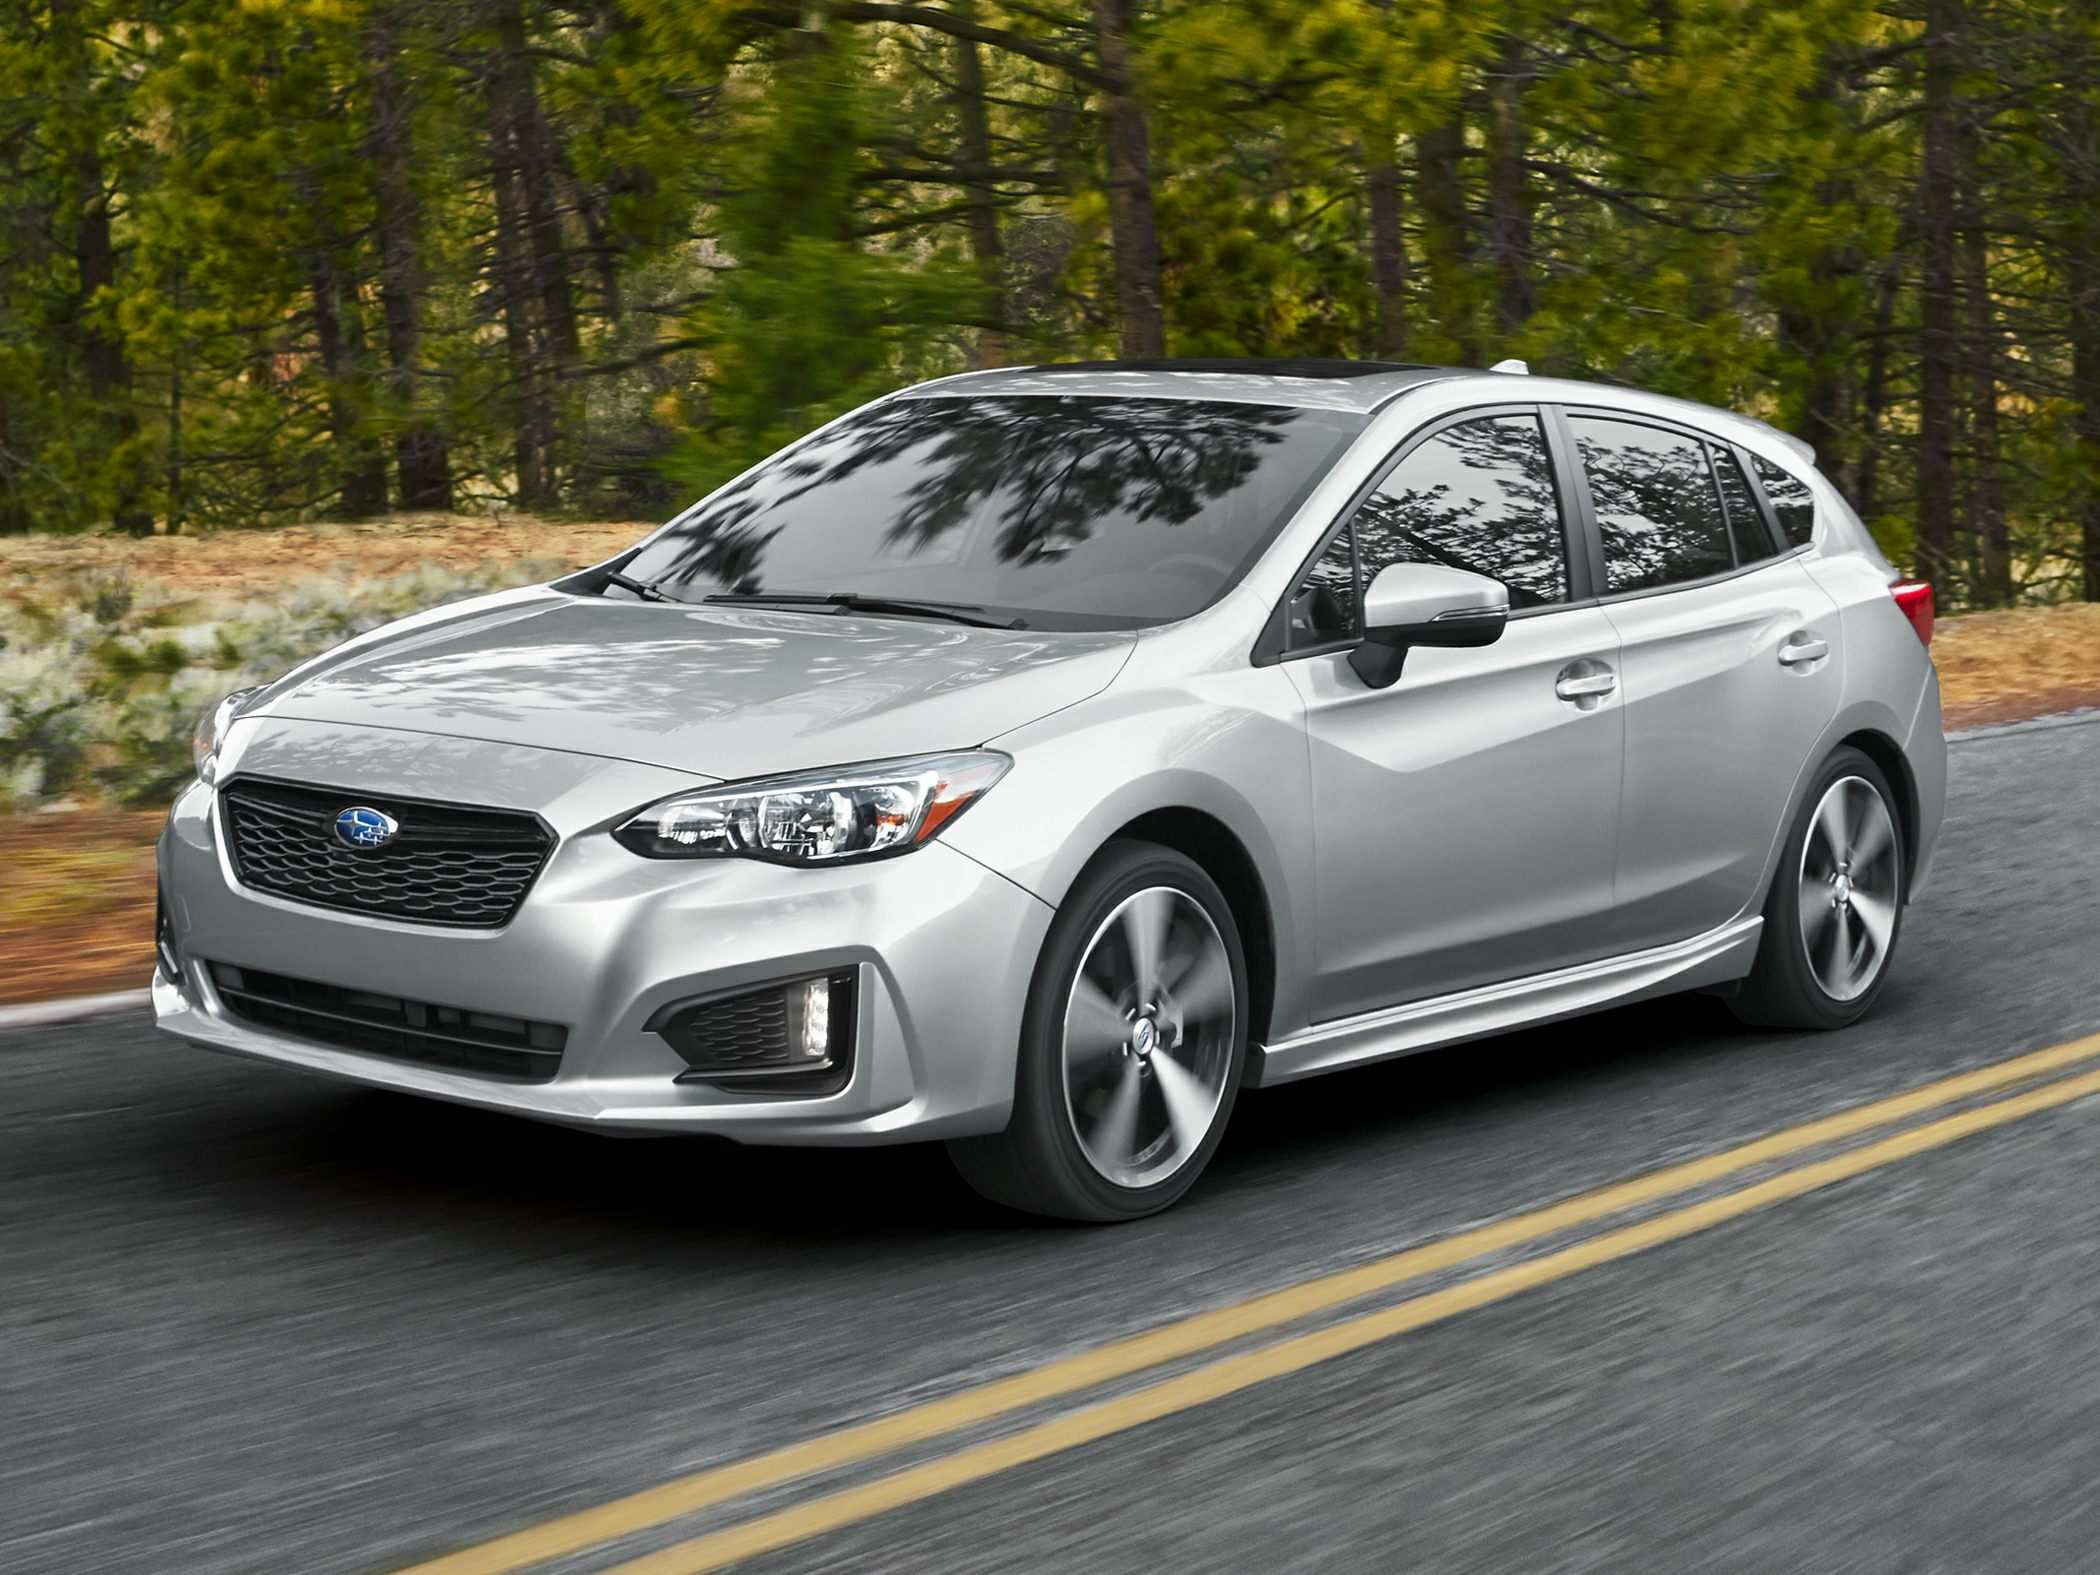 31 Best Review Best Subaru 2019 Lease Exterior Images by Best Subaru 2019 Lease Exterior